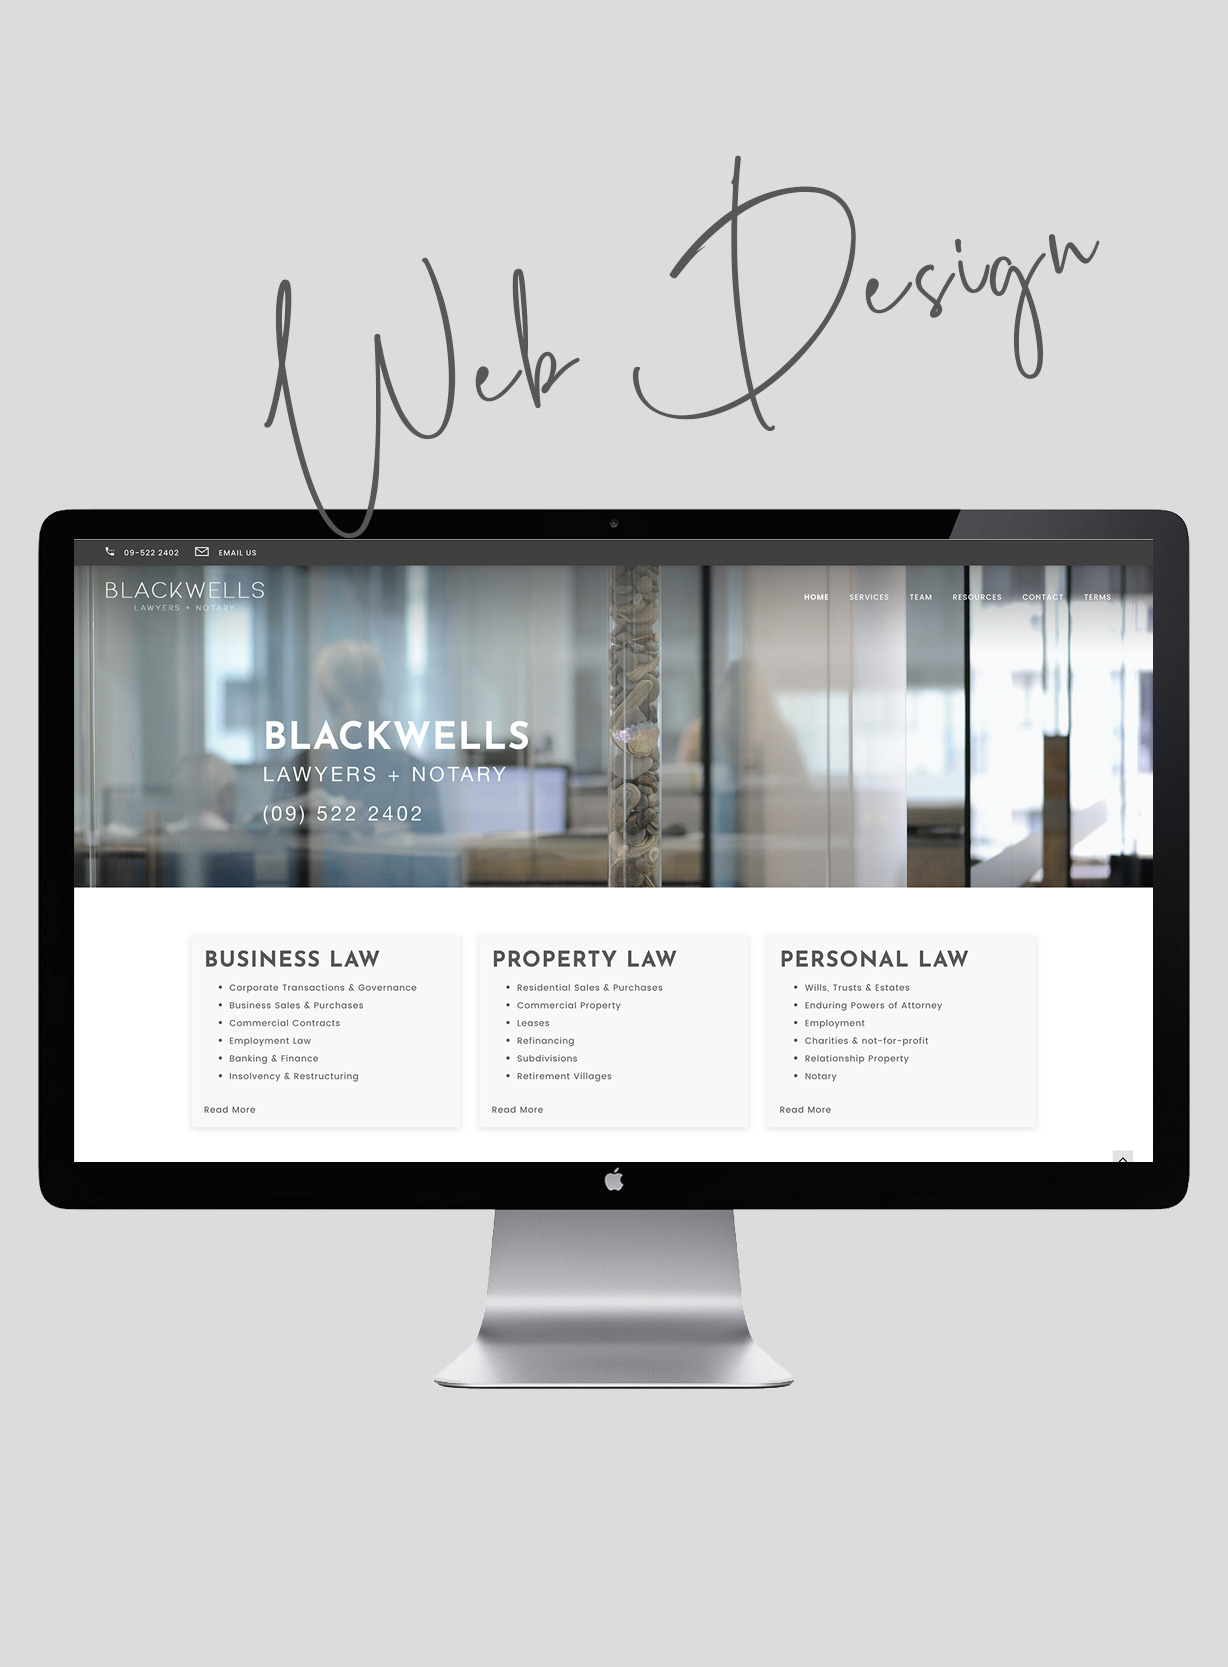 Web Design Auckland Blackwells Law Firm Website